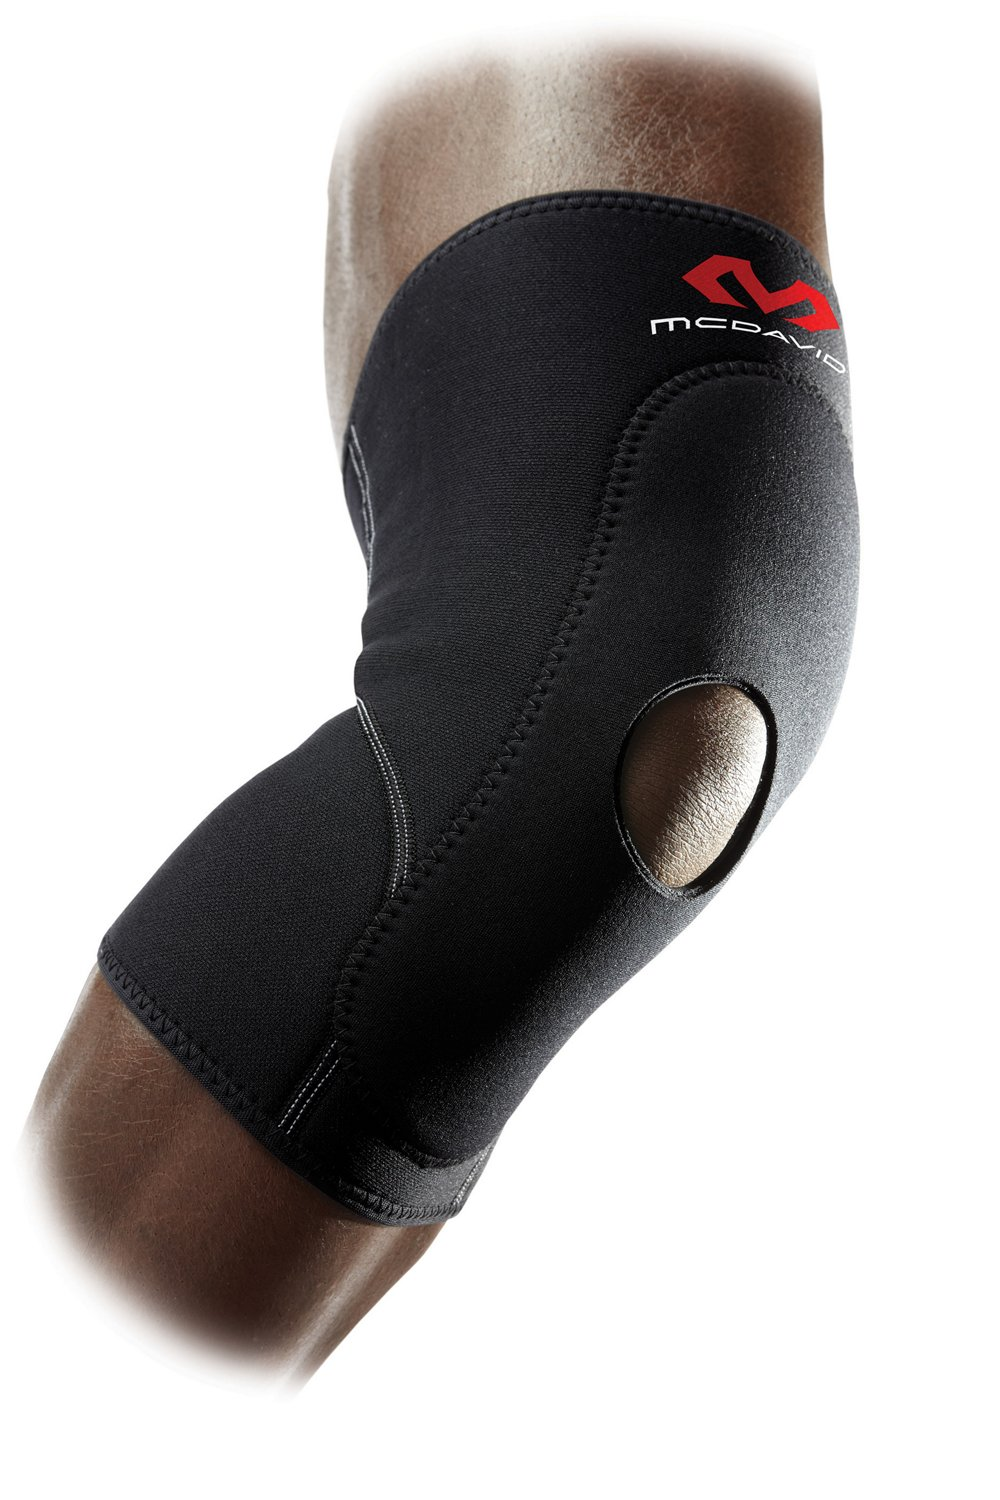 0050ff7b4e Shin, Thigh And Knee Braces | Knee Sleeve, Thigh Braces, Shin Braces ...